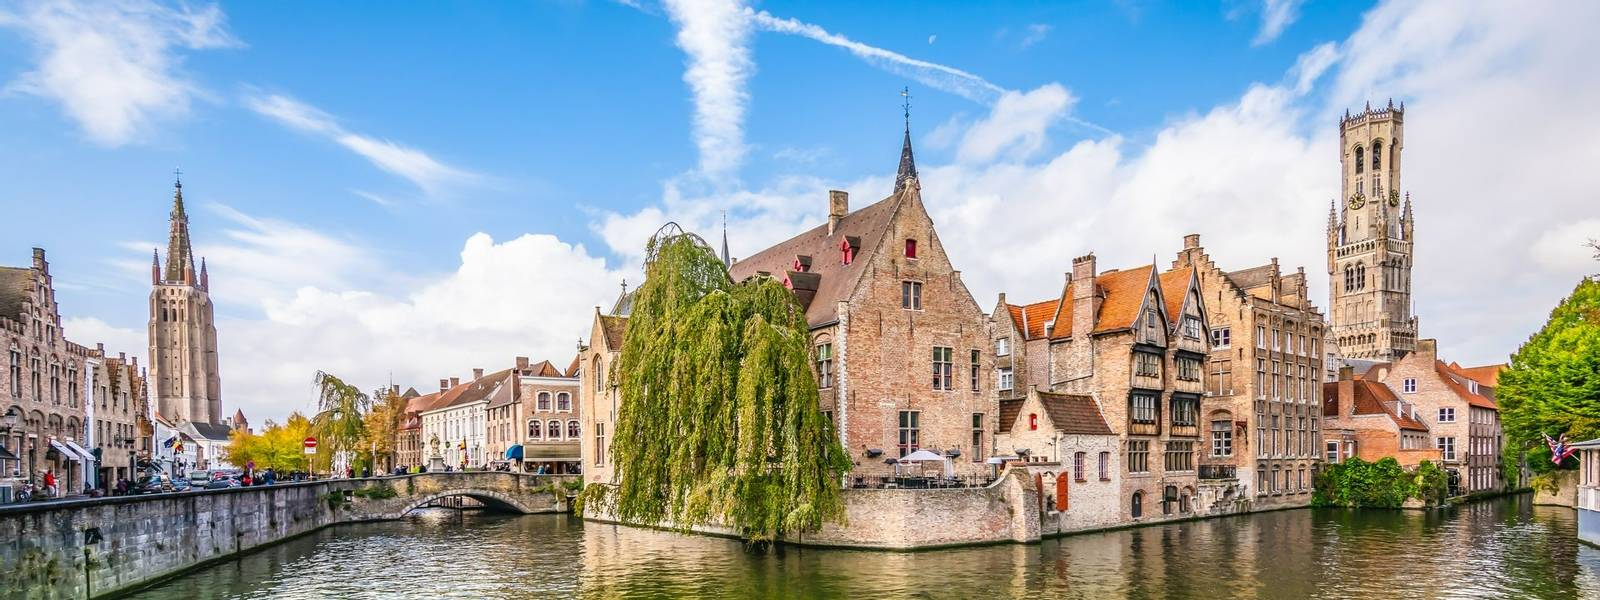 Bruges -  Saddle - AdobeStock_226449997.jpeg